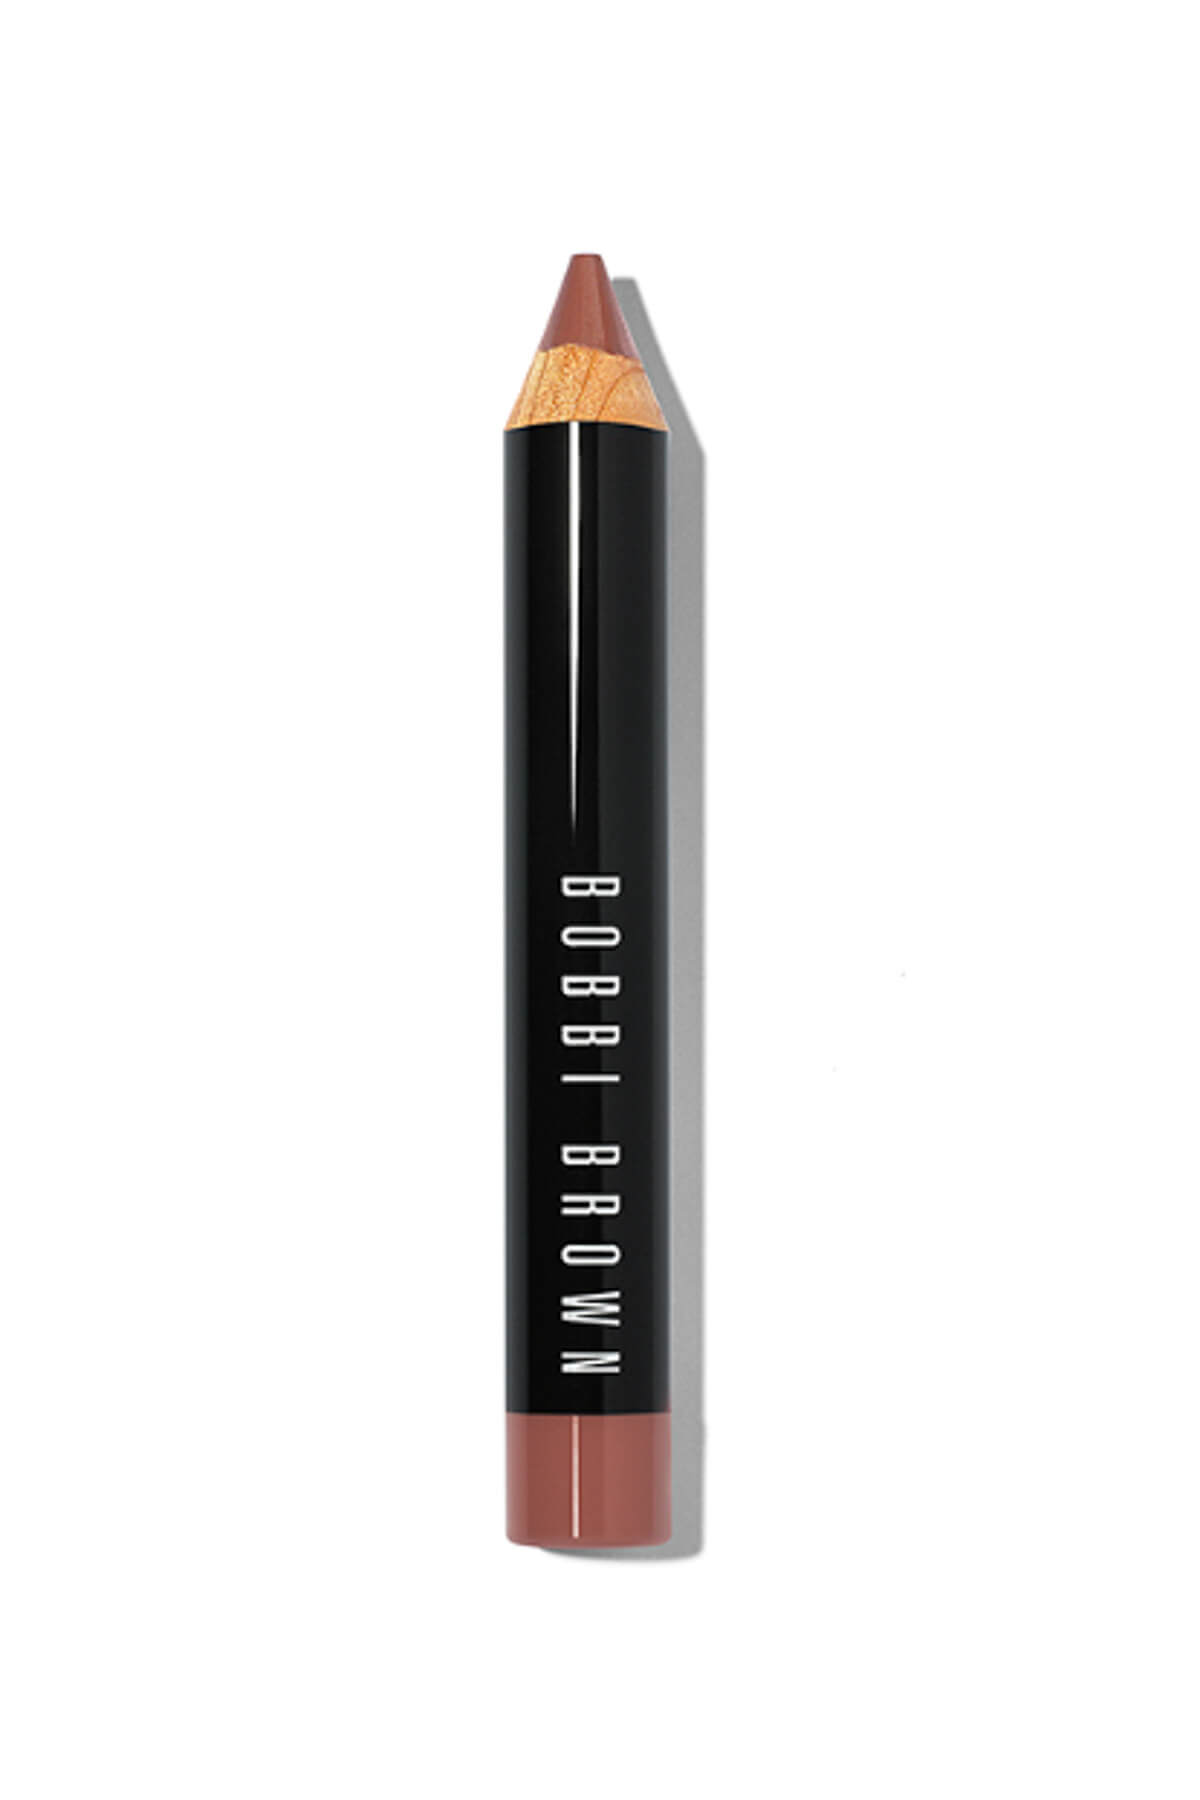 BOBBI BROWN Art Stick / Kalem Ruj .2 Oz / 6 G Brown Berry 716170154824 1